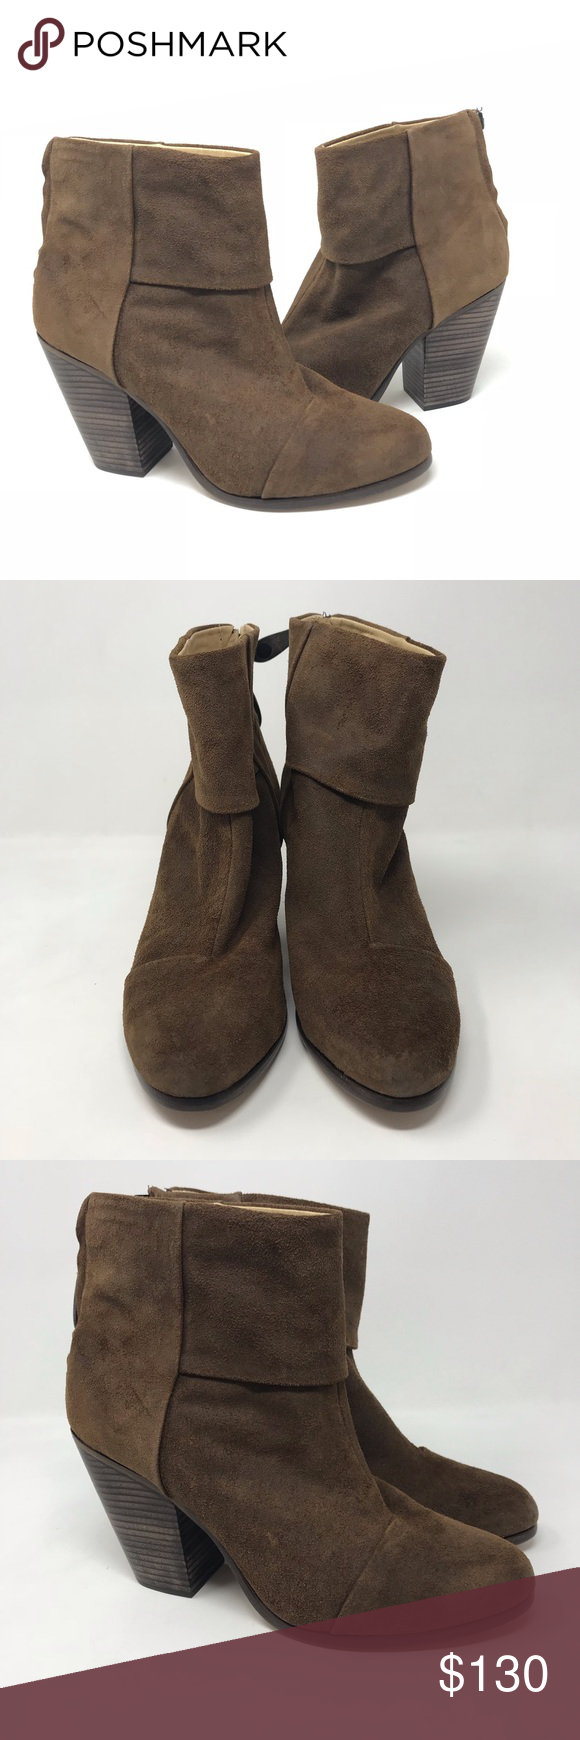 0d76b439808 RAG   BONE NEWBURY BROWN WAXED SUEDE ZIP UP BOOTS New with defects these  were used